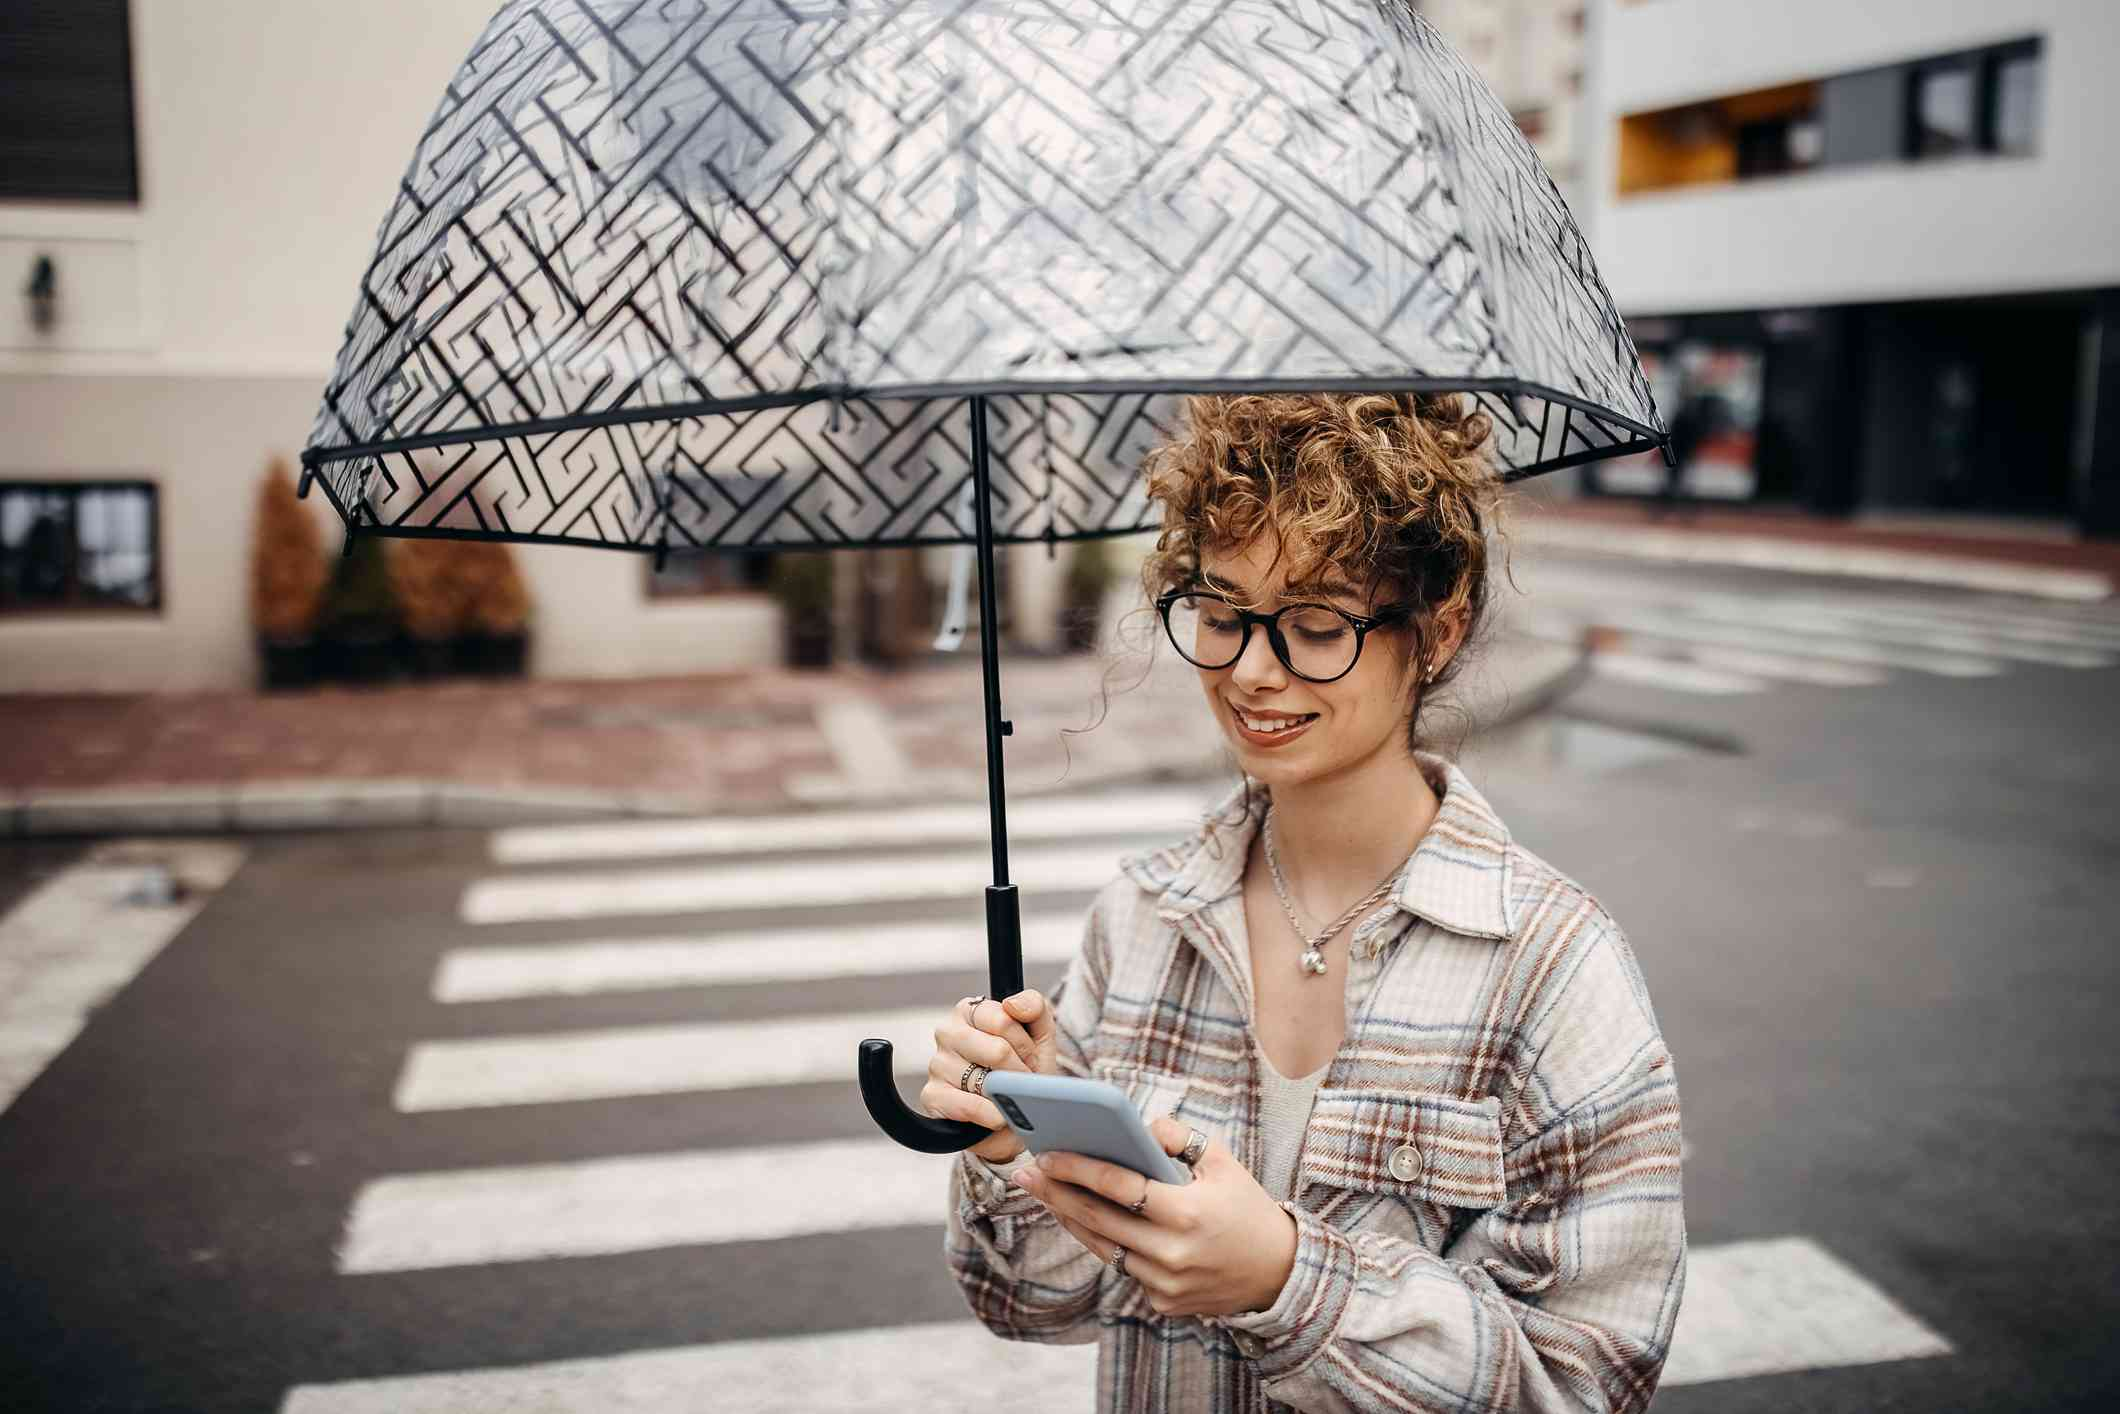 A young woman holding an umbrella crosses the road looking at her phone.